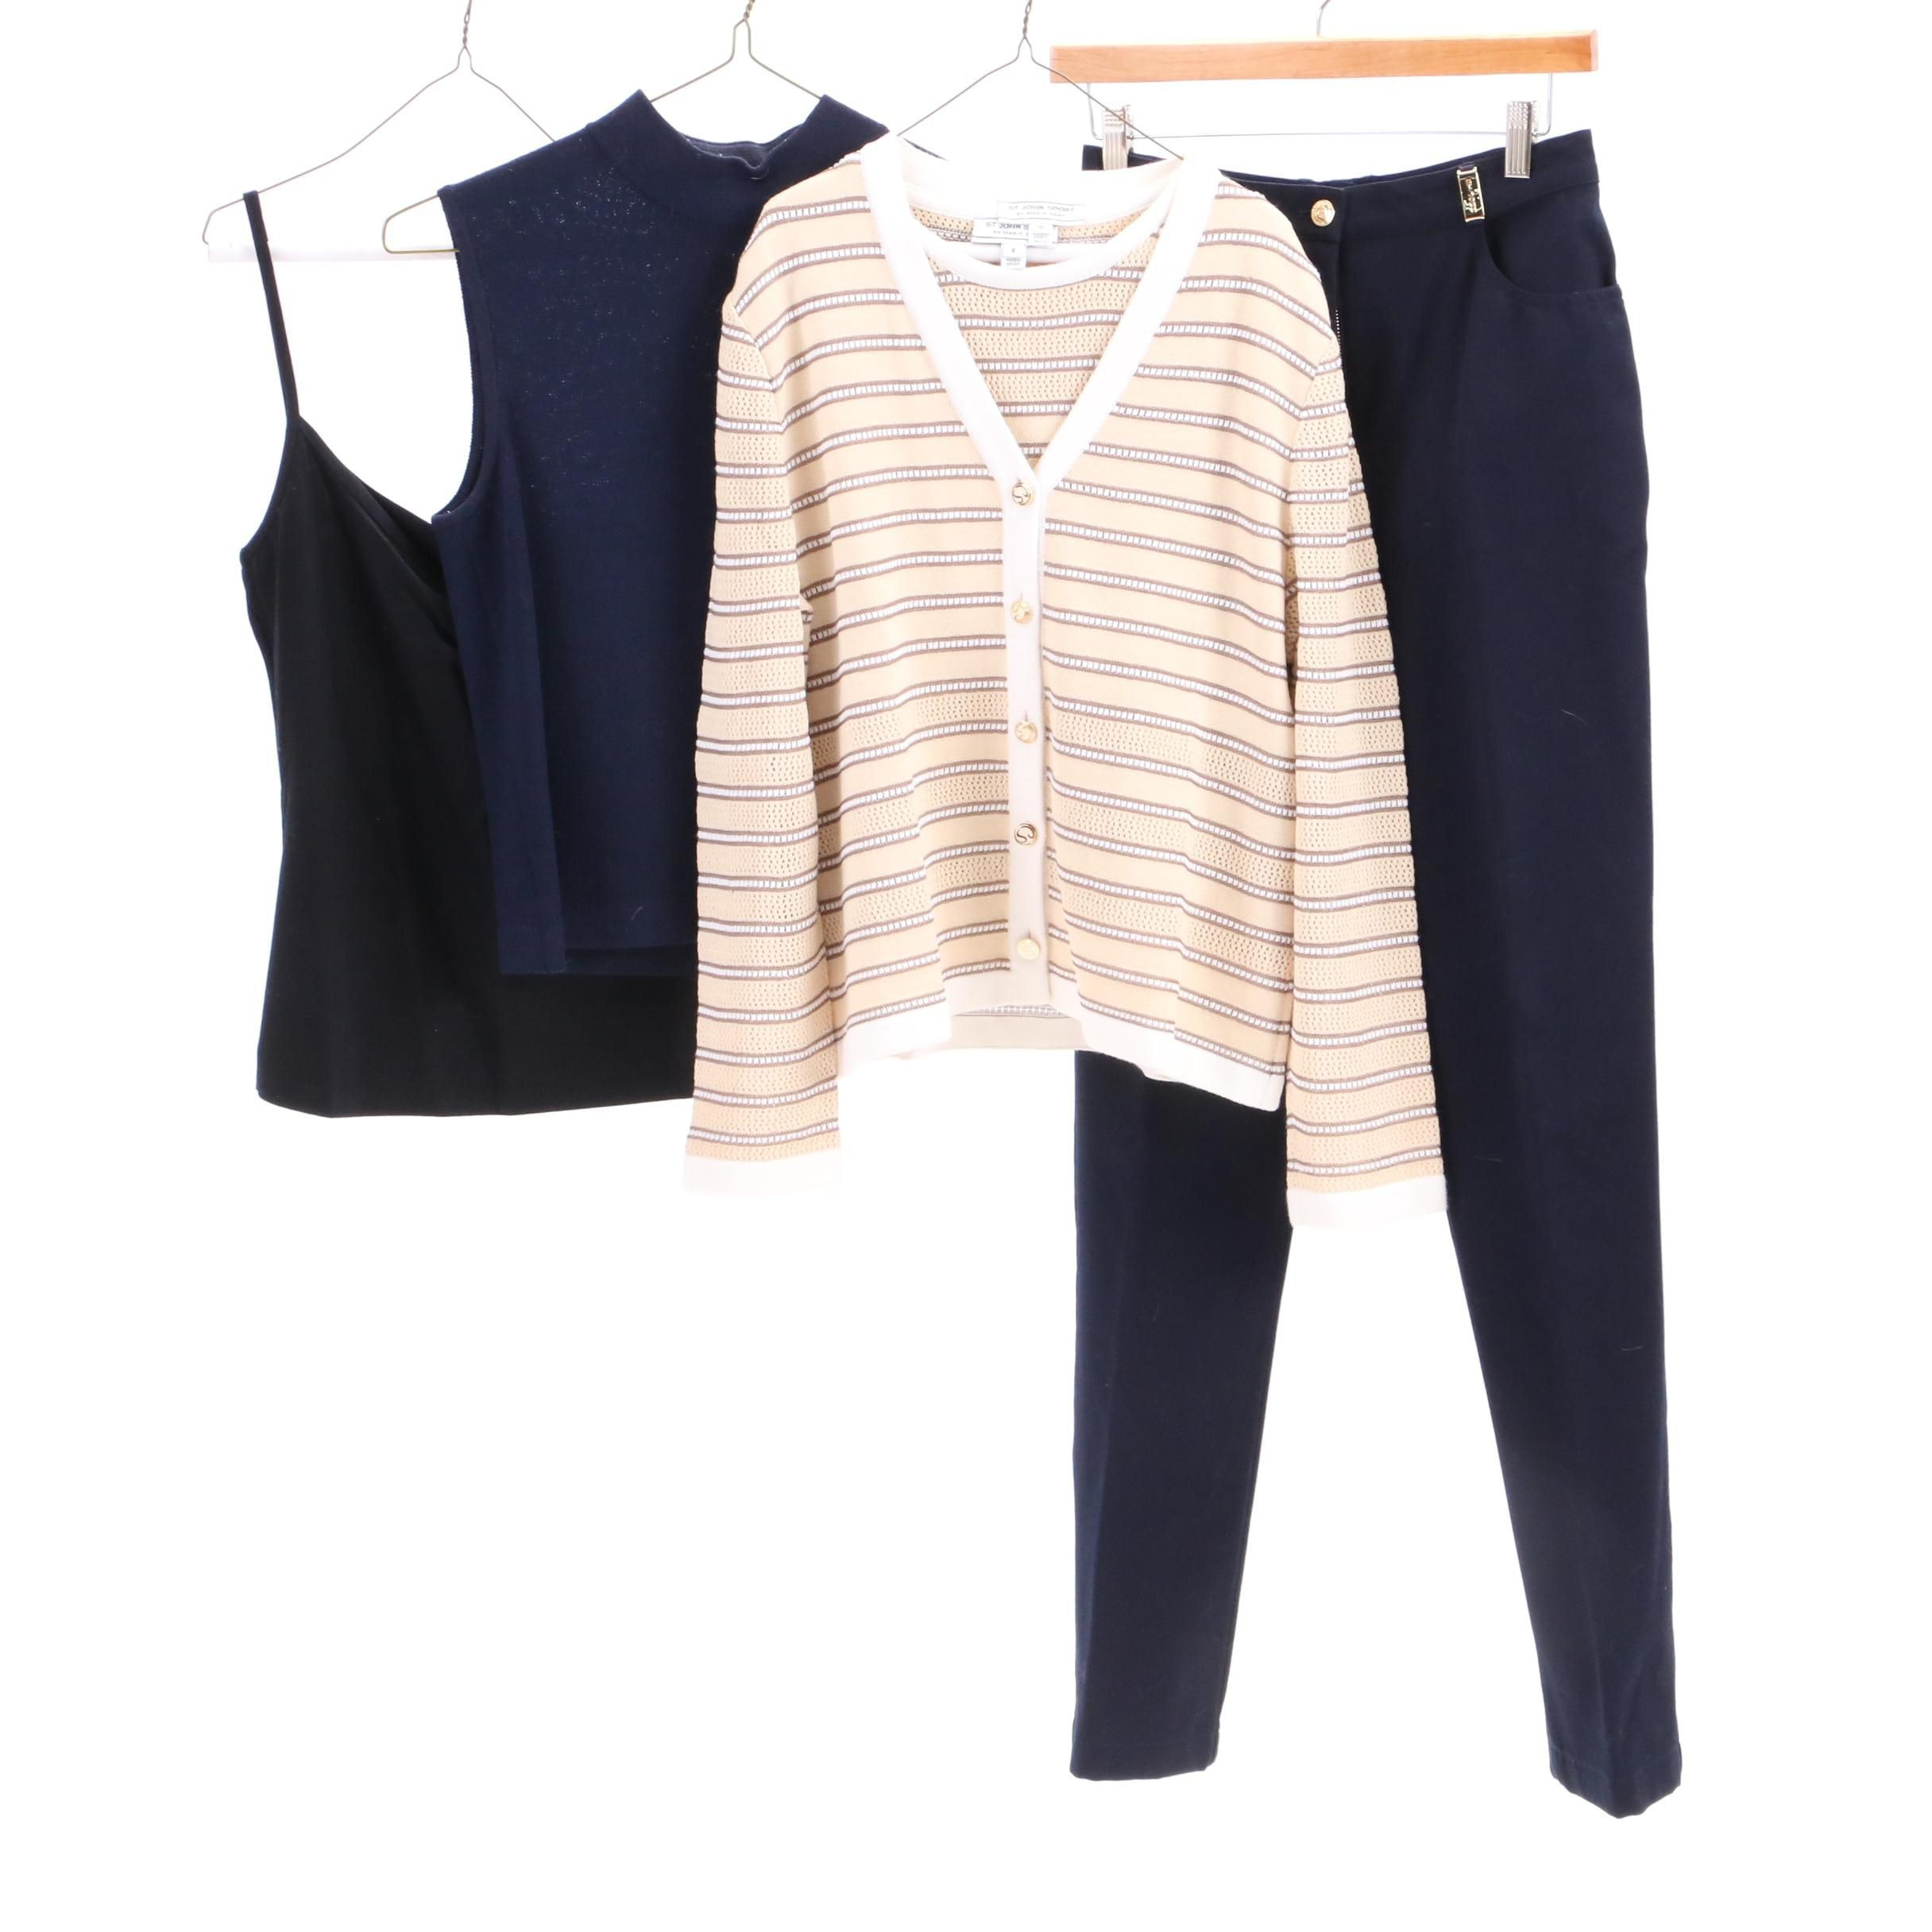 St. John Sport and Basics Clothing Separates